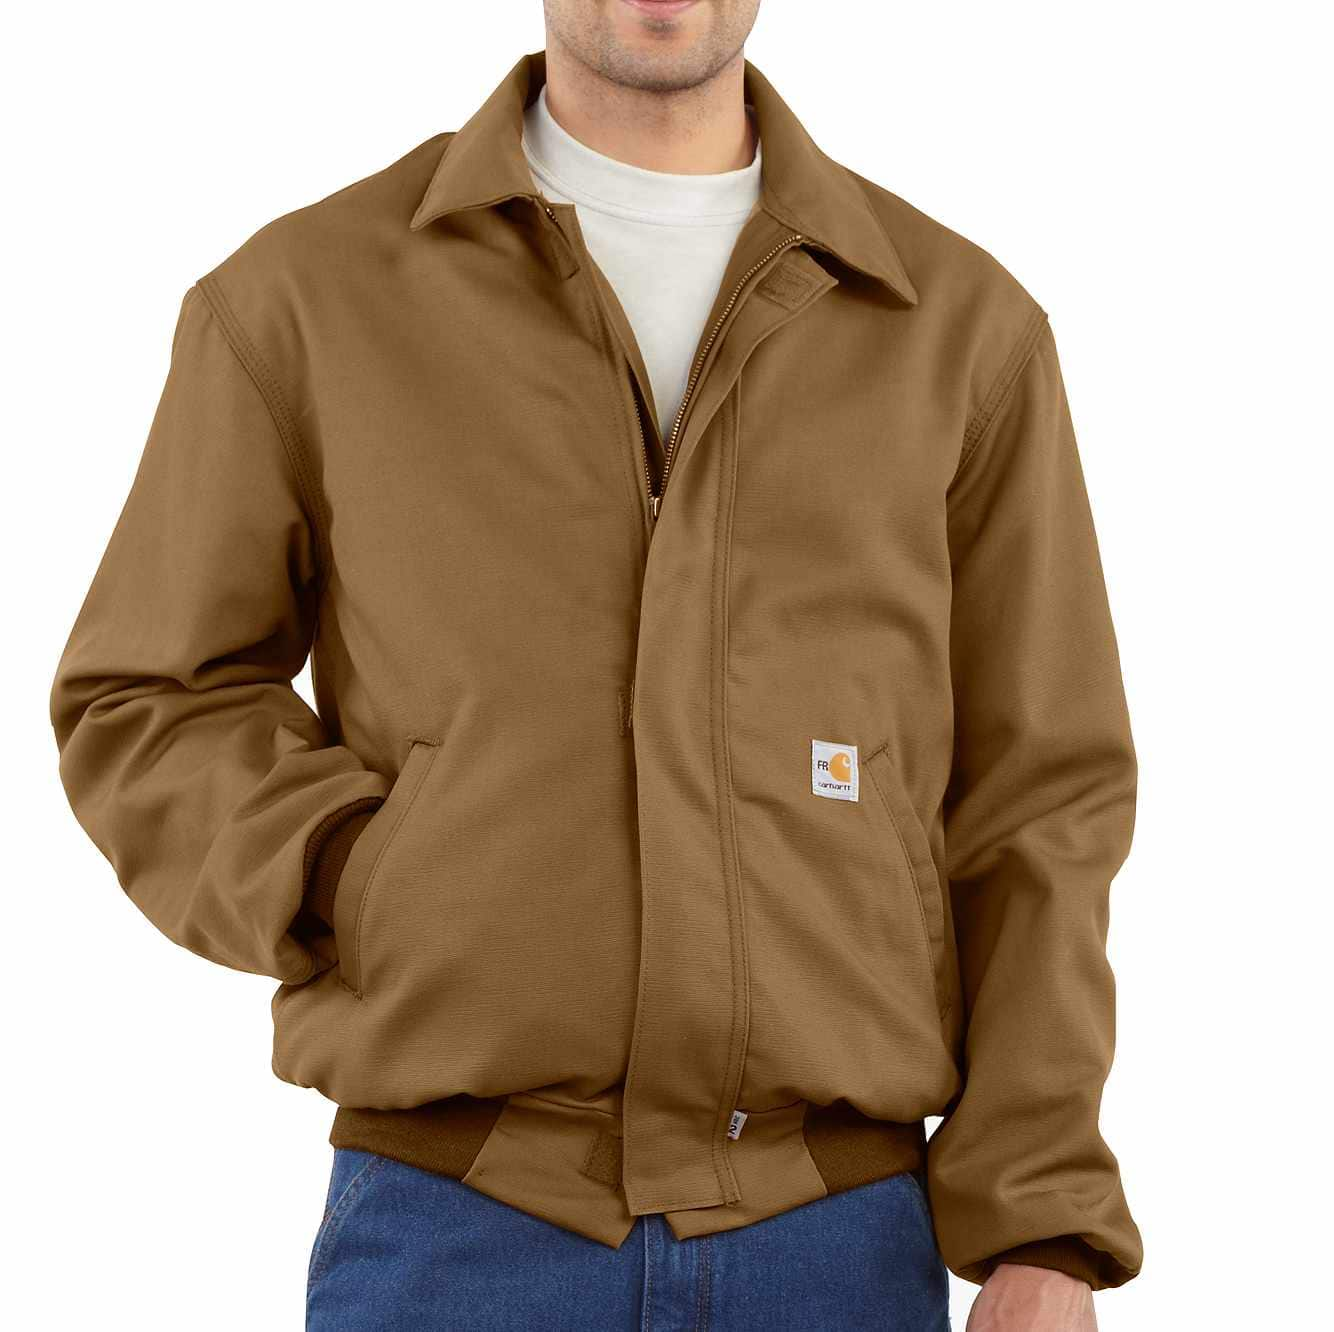 Picture of Flame-Resistant All-Season Bomber Jacket in Carhartt Brown